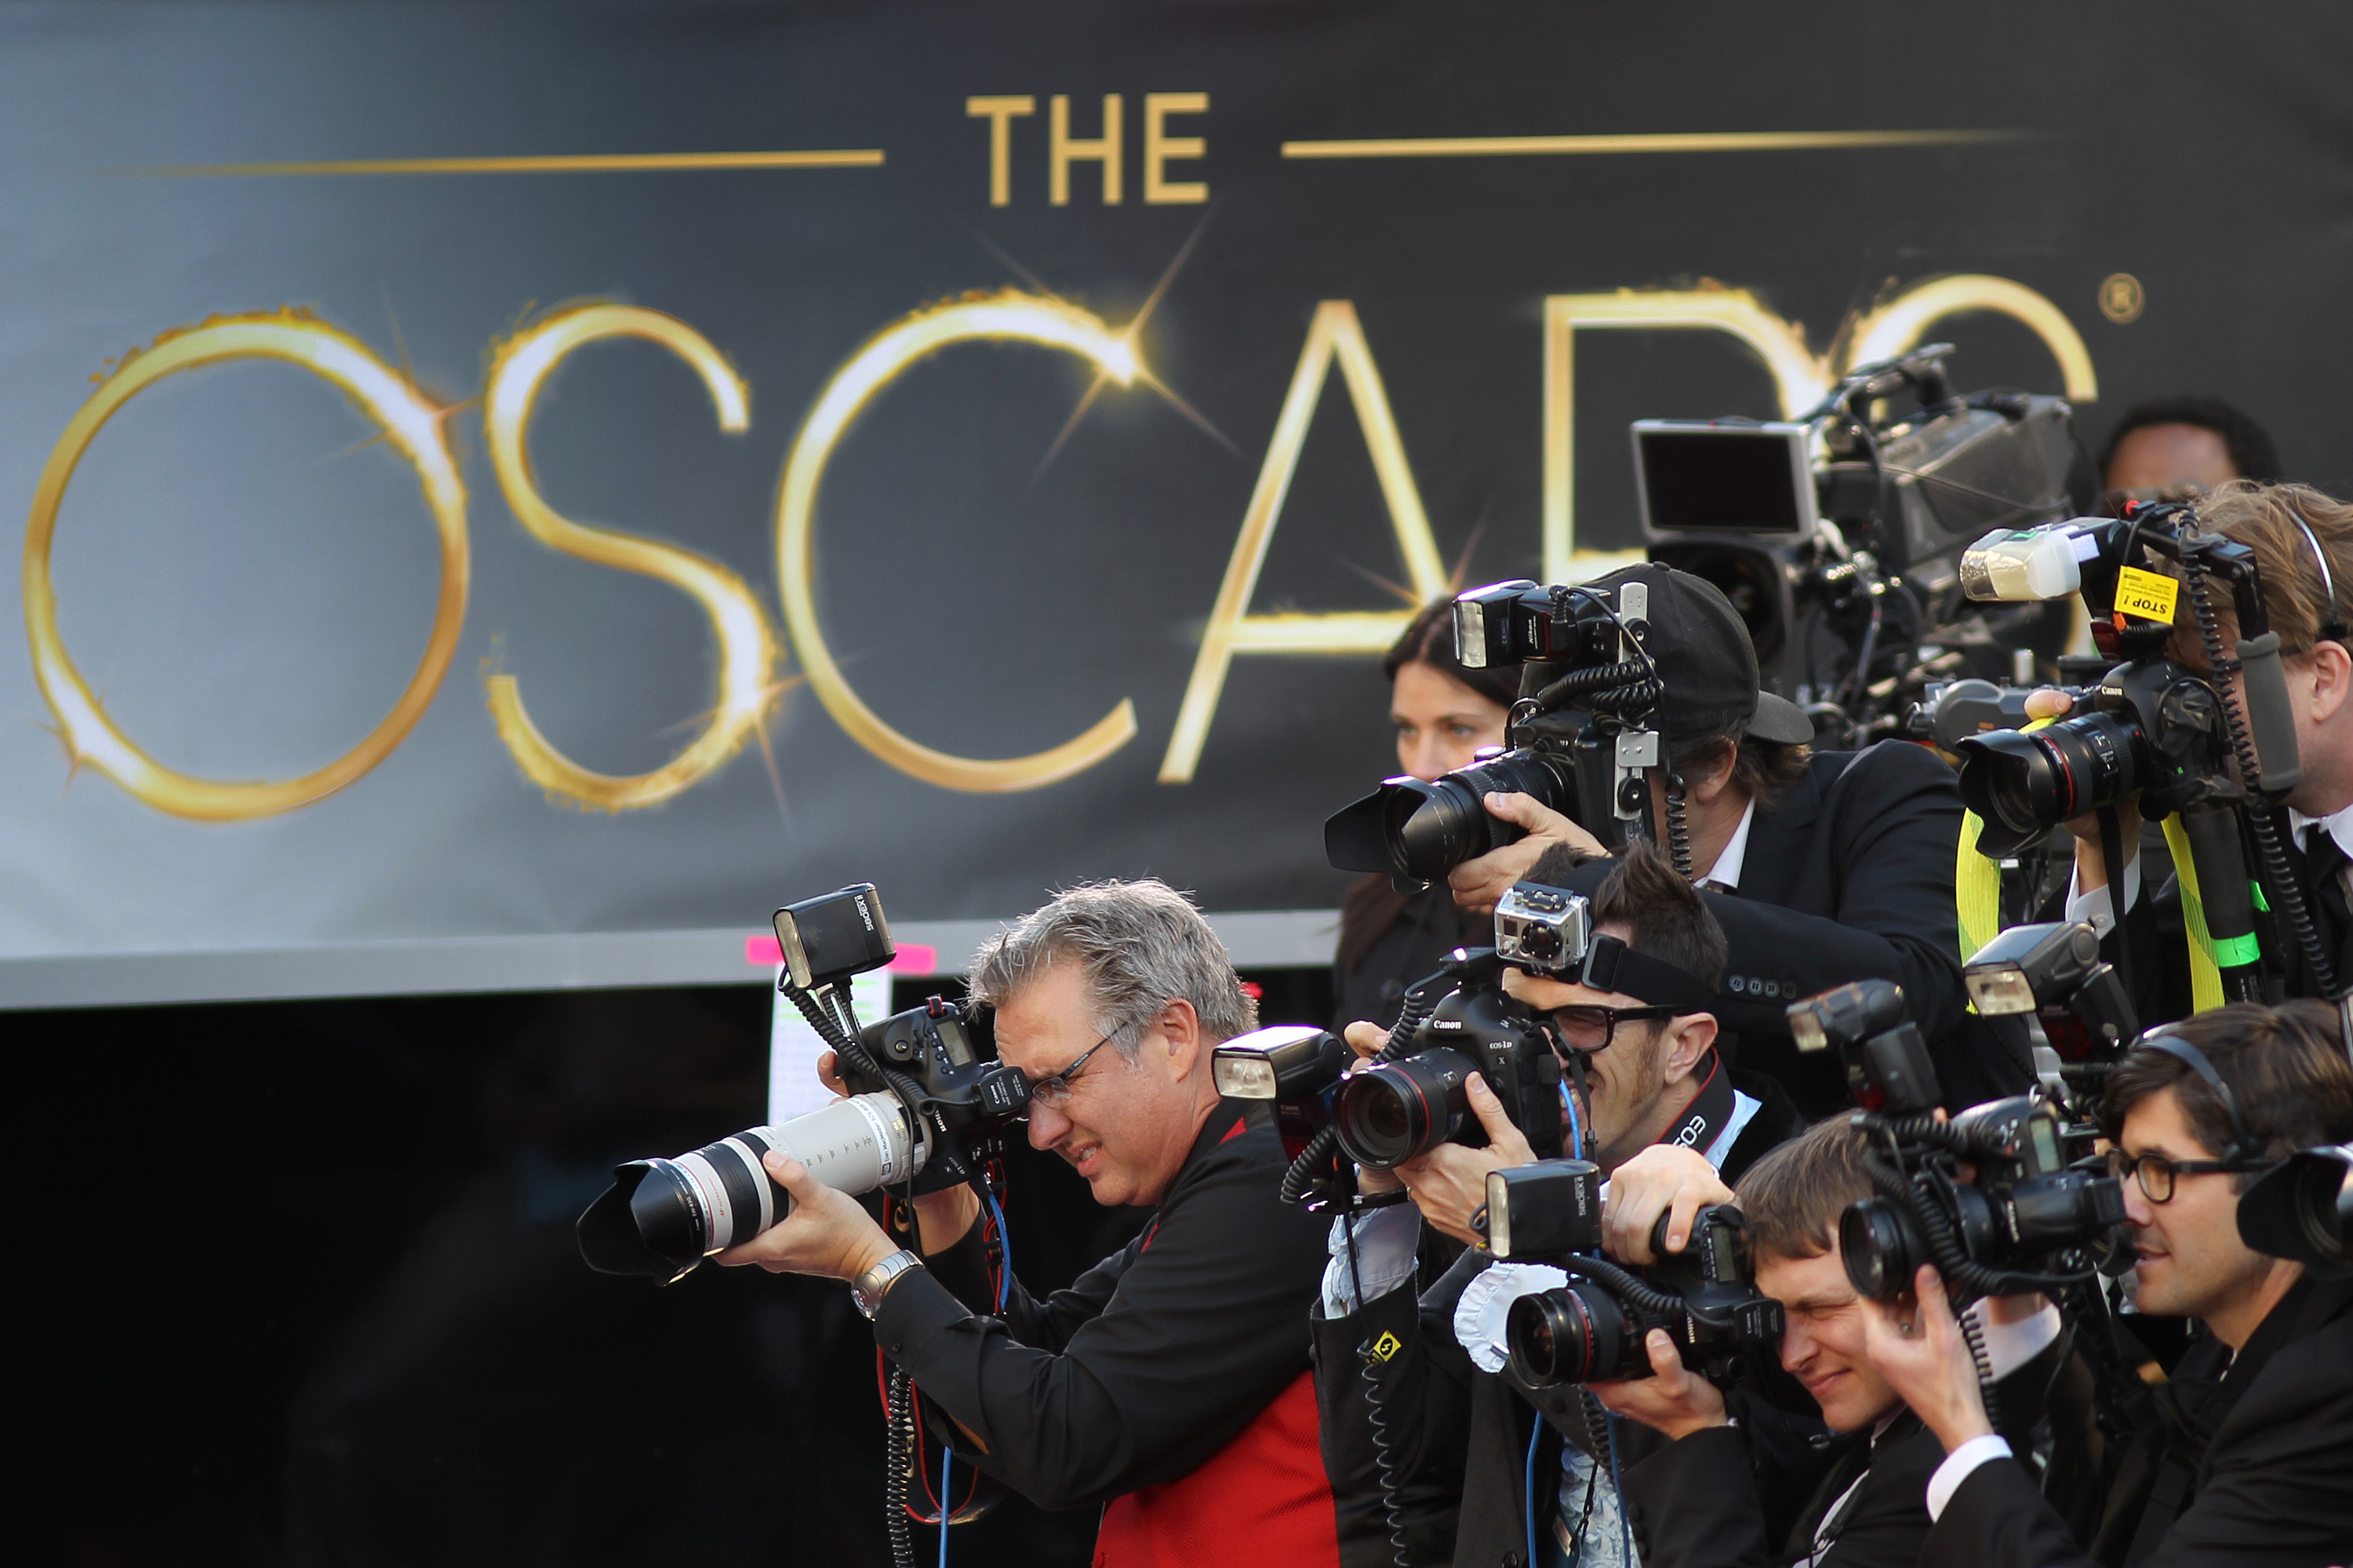 Oscars 2019 live stream date time how and where to watch 91st academy awards live meaww - Red carpet photographers ...